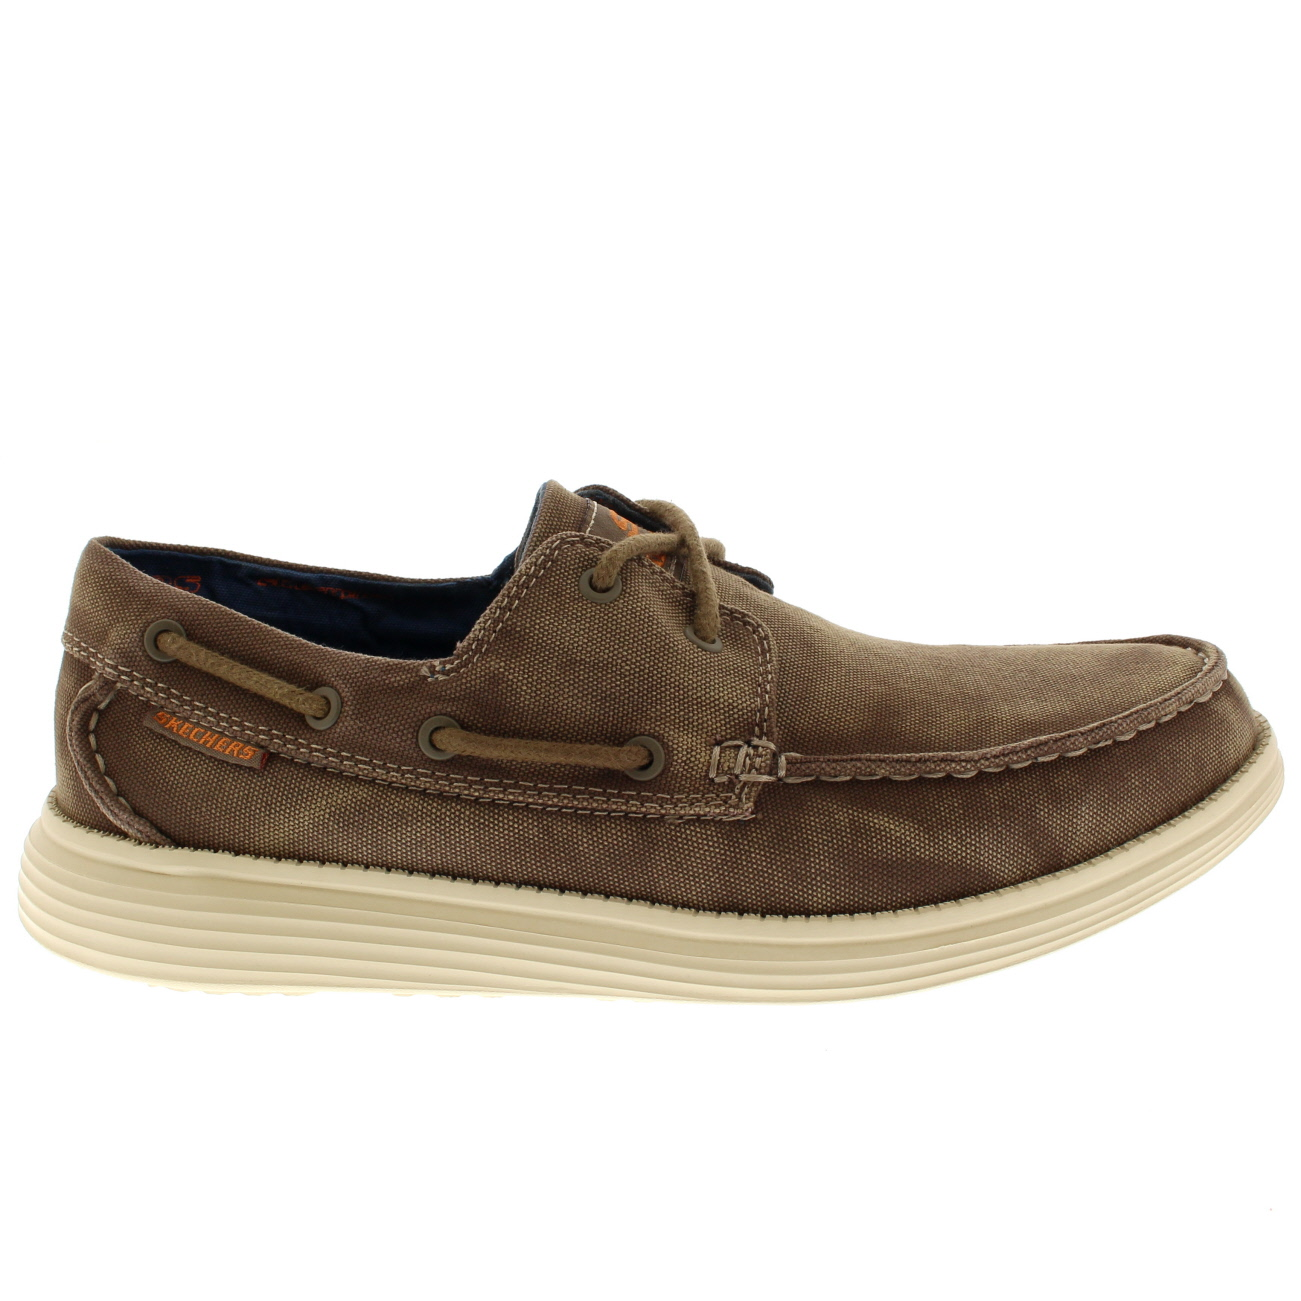 Mousse À Mémoire Skechers Mens 12 aqsQI